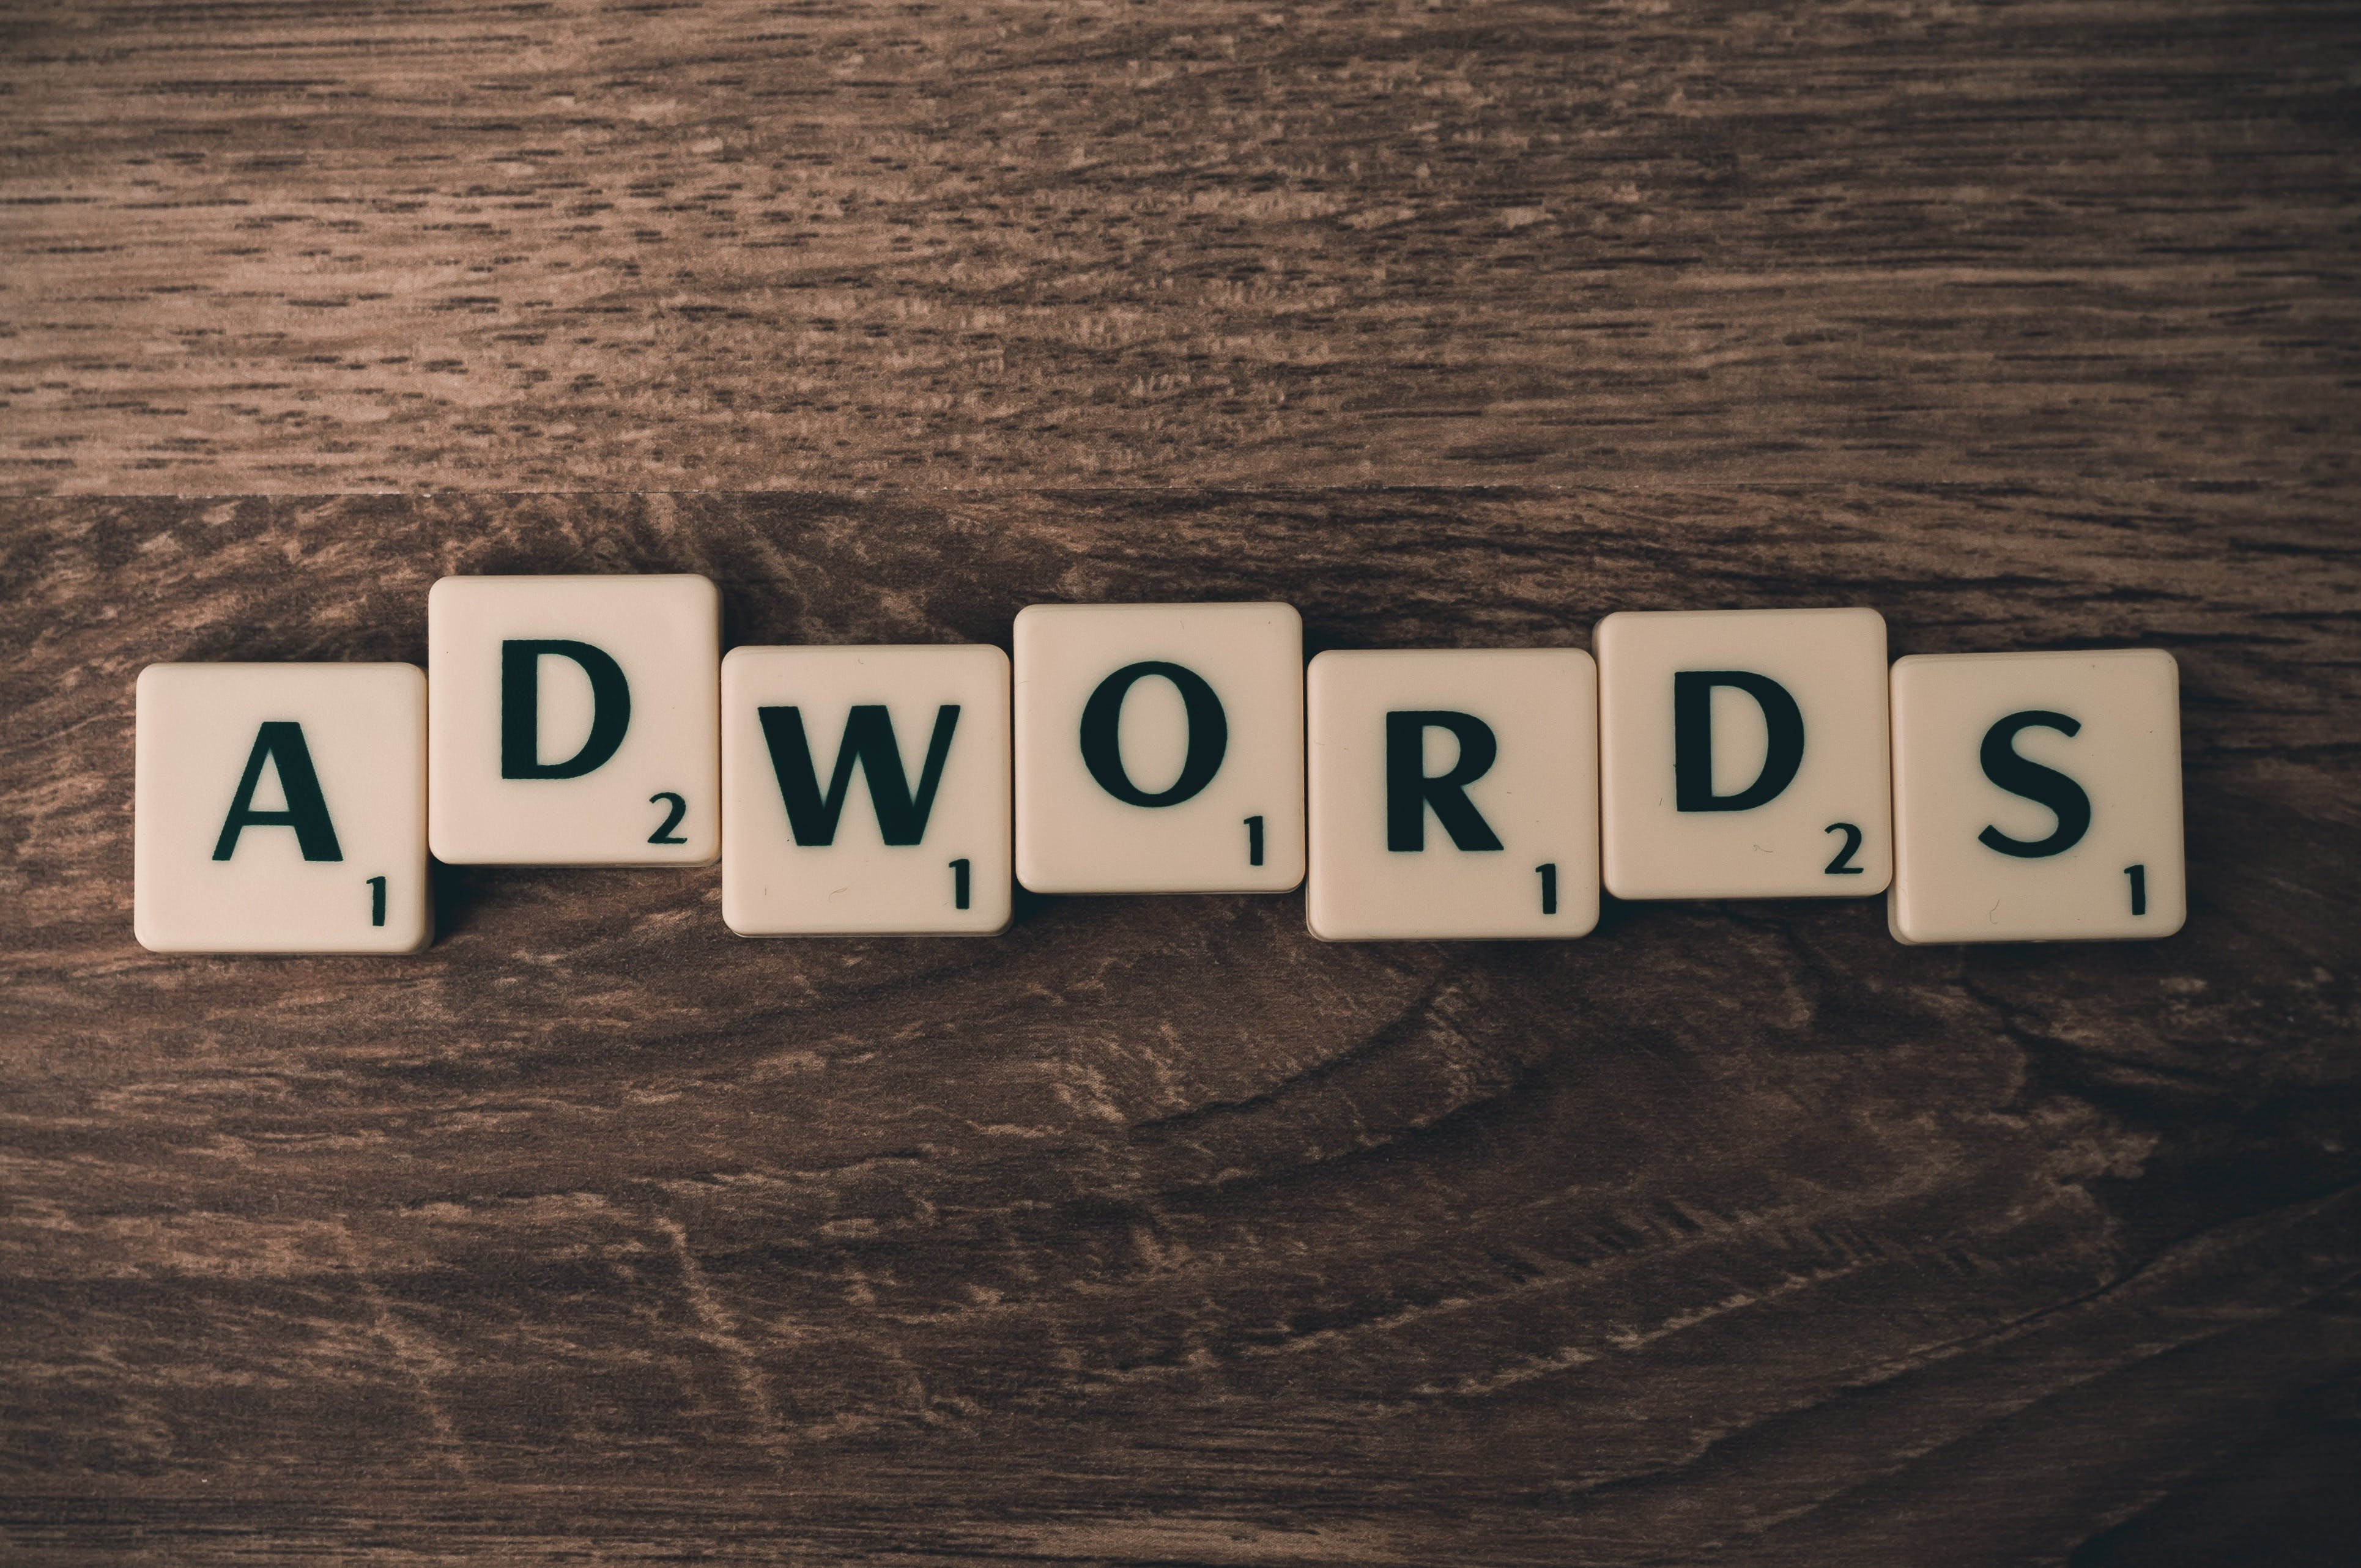 Scrabble Forming Adwords on Brown Wooden Surface